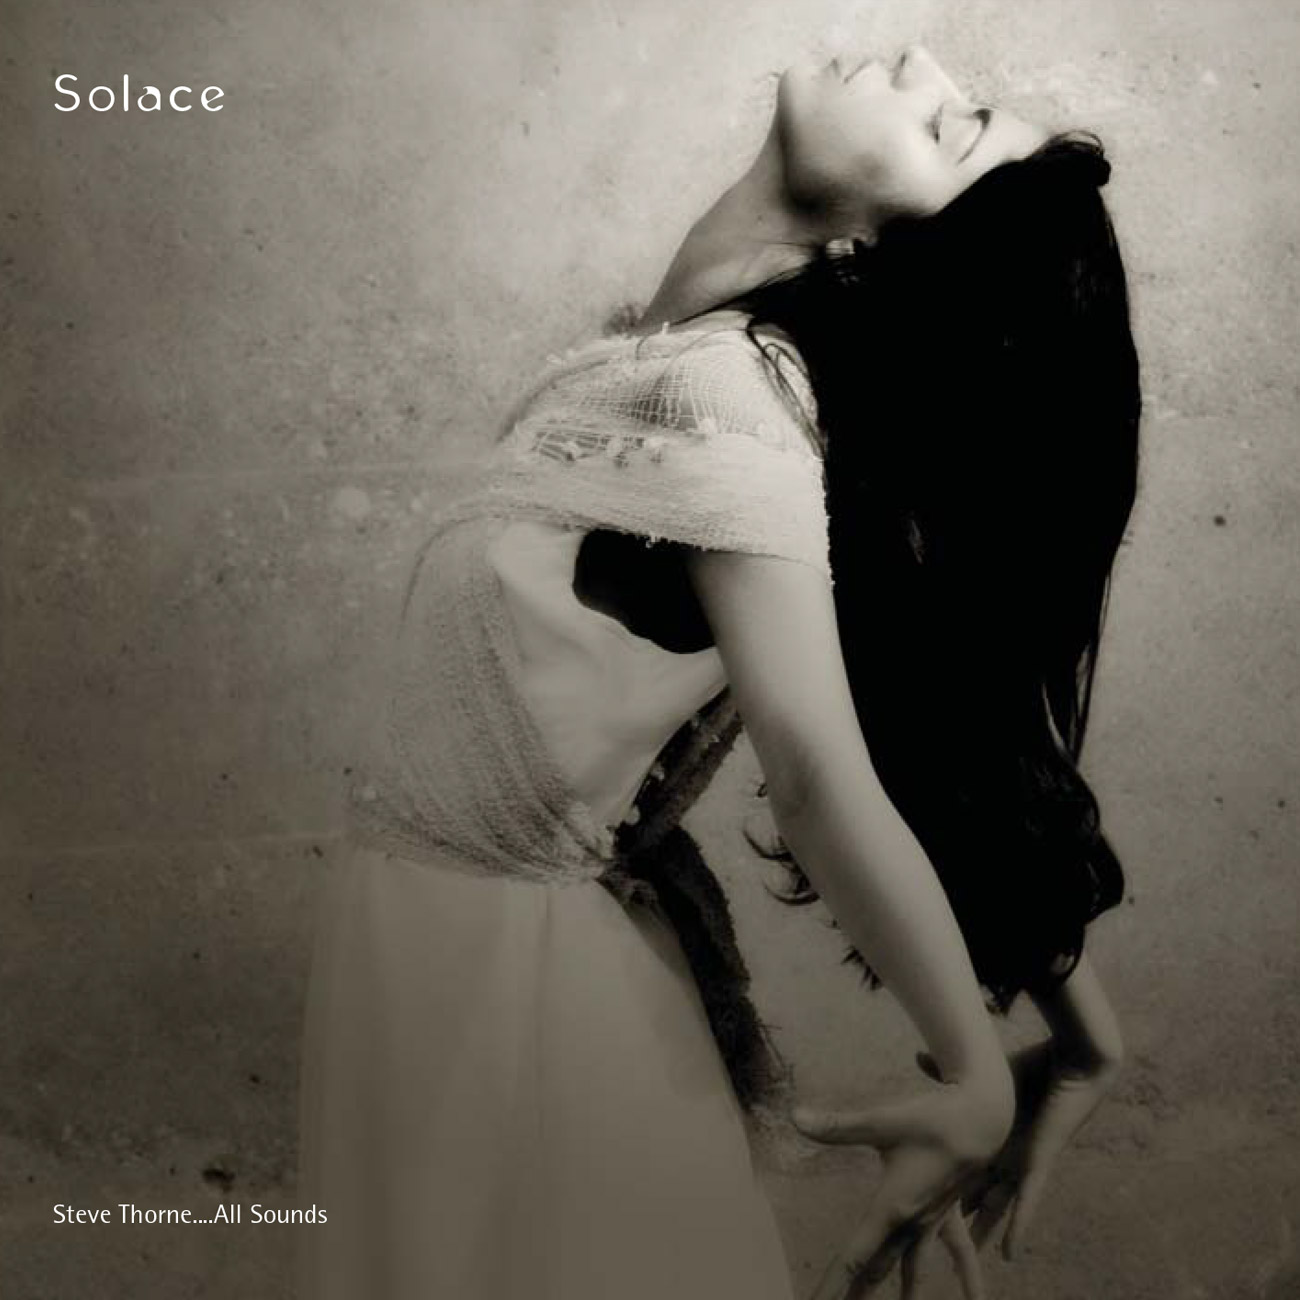 09 - Solace